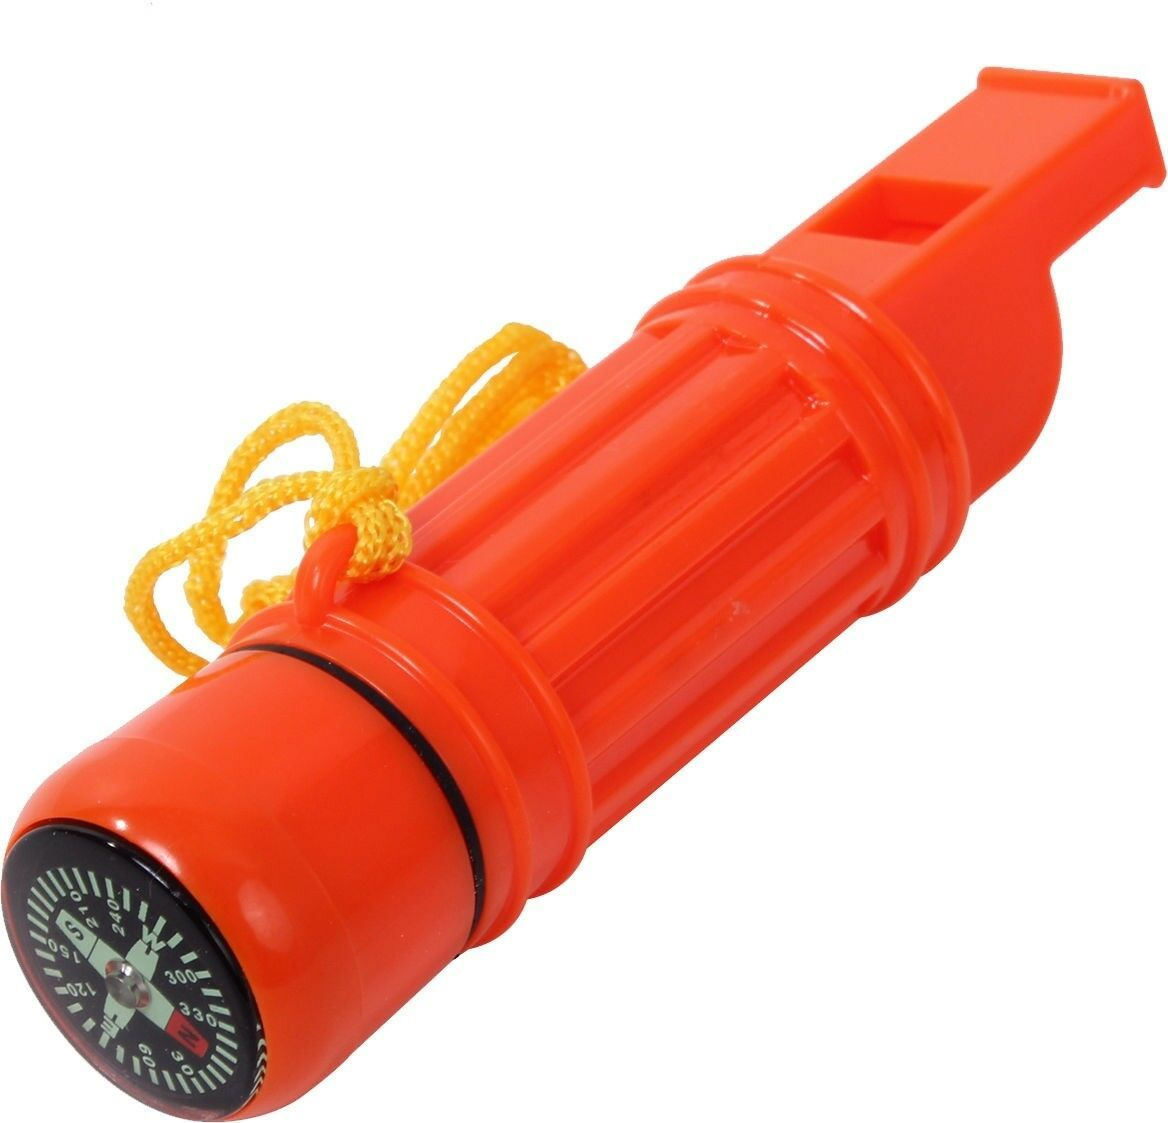 Primary image for 5-In-1 Deluxe Survival Tool Emergency Outdoor Survival Gear